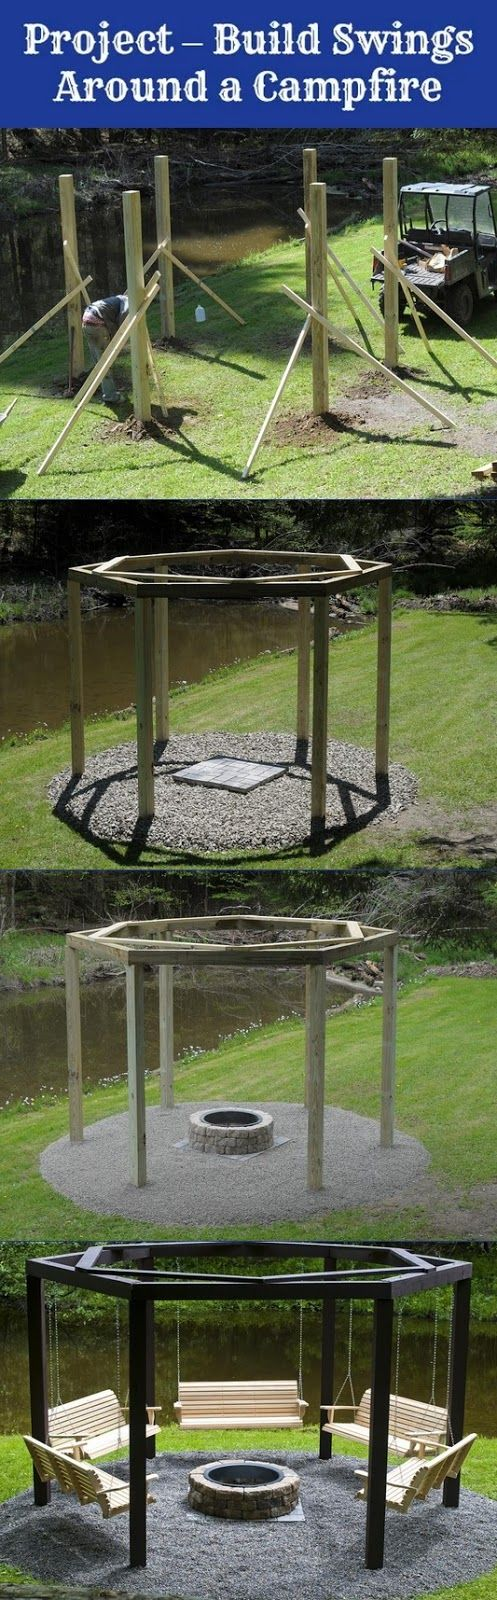 Build swings around a campfire, looks kind of like a pergola with five wooden swings angled around the firepit ........... so cool.